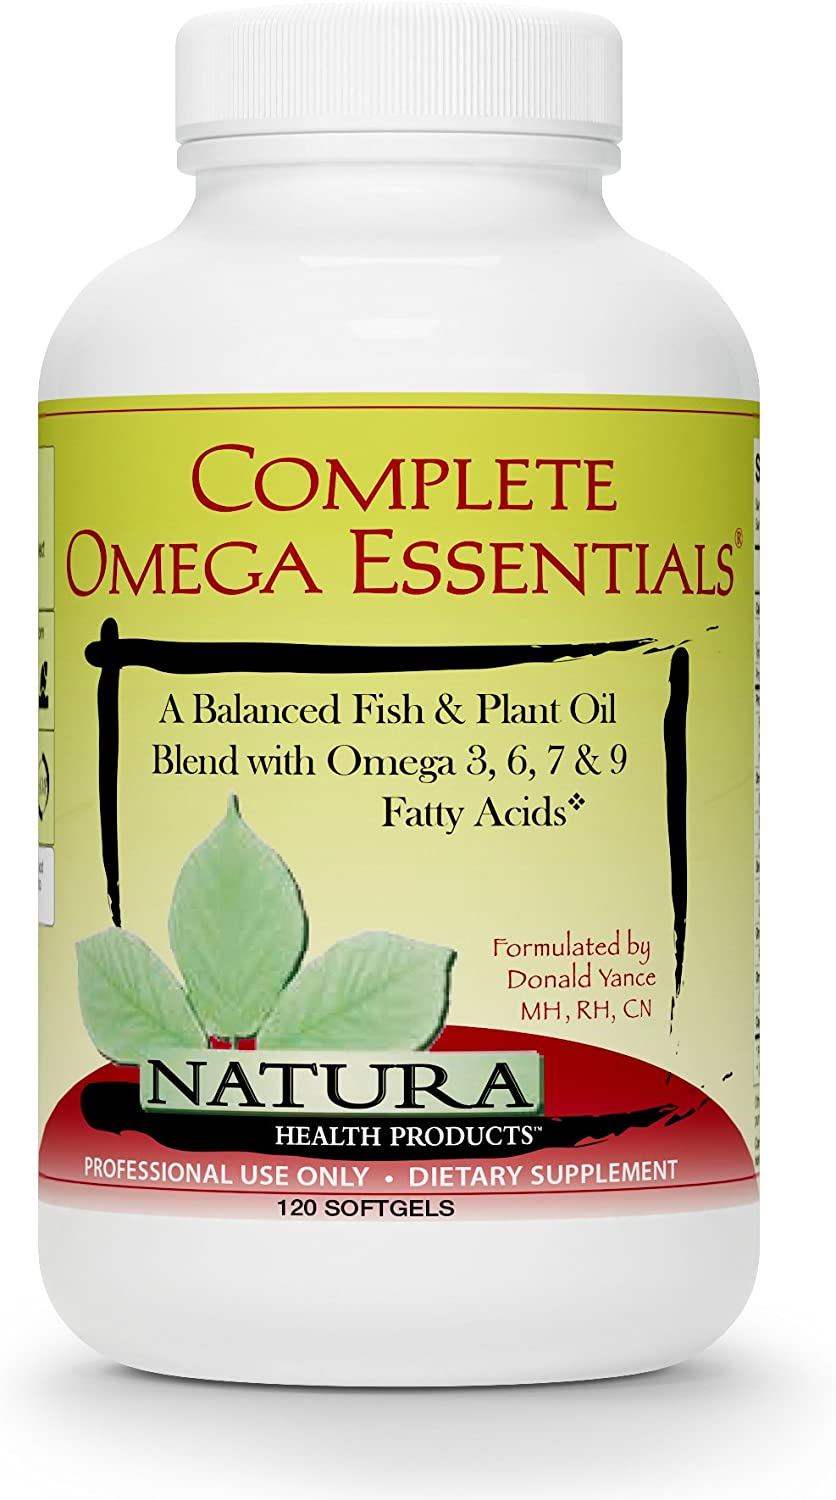 Natura Health Products - Complete Omega Essentials - Premium Fish Oil Concentrate with Sea Buckthorn and Borage Seed Oils for Optimal Ratios of Omega 3, Omega 6, Omega 7, and Omega 9 Fatty Acids